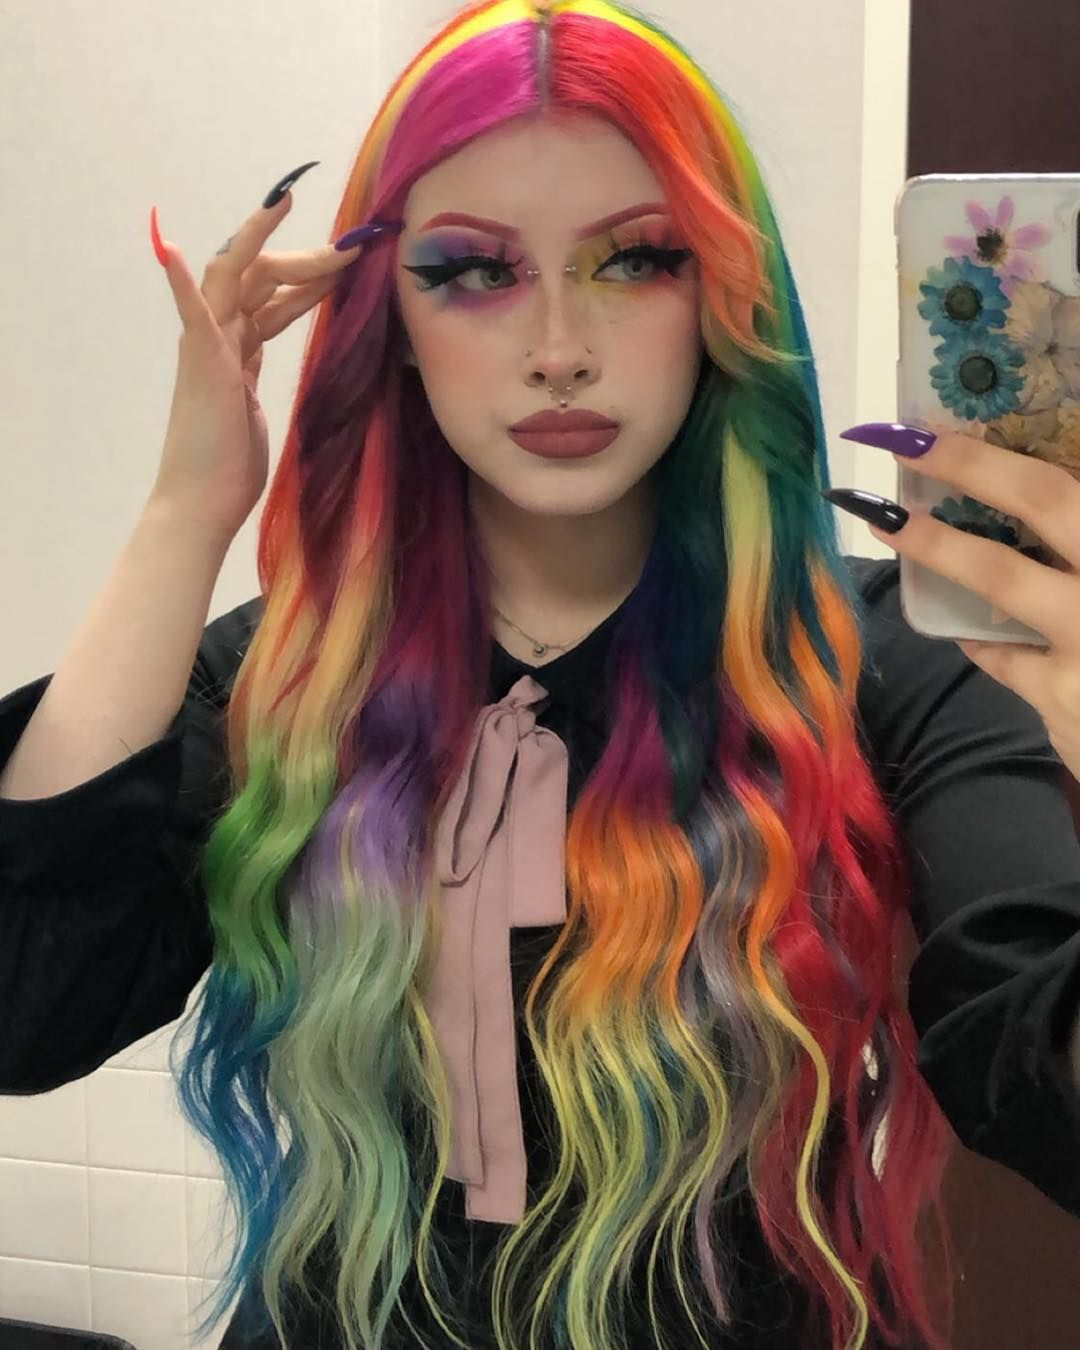 Julia On Instagram I Wanna Change Up My Look I M Bored Scene Hair Colors Aesthetic Hair Hair Inspo Color